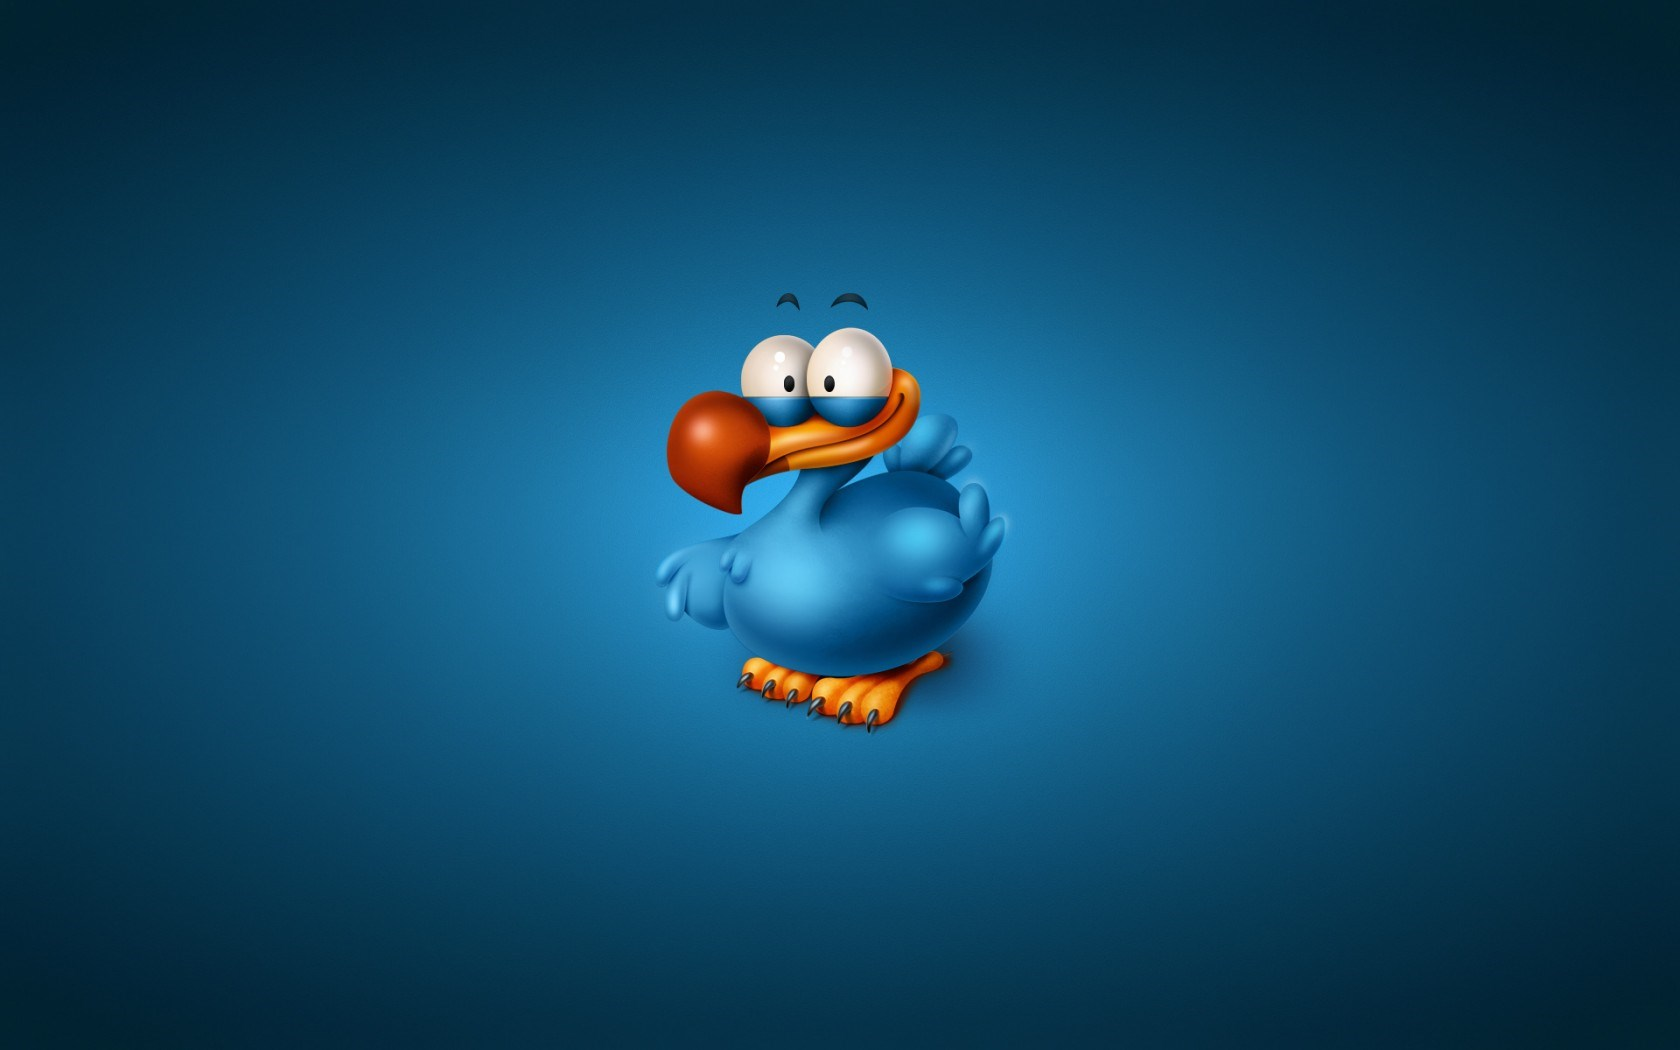 Bird Blue Minimalism Cartoon